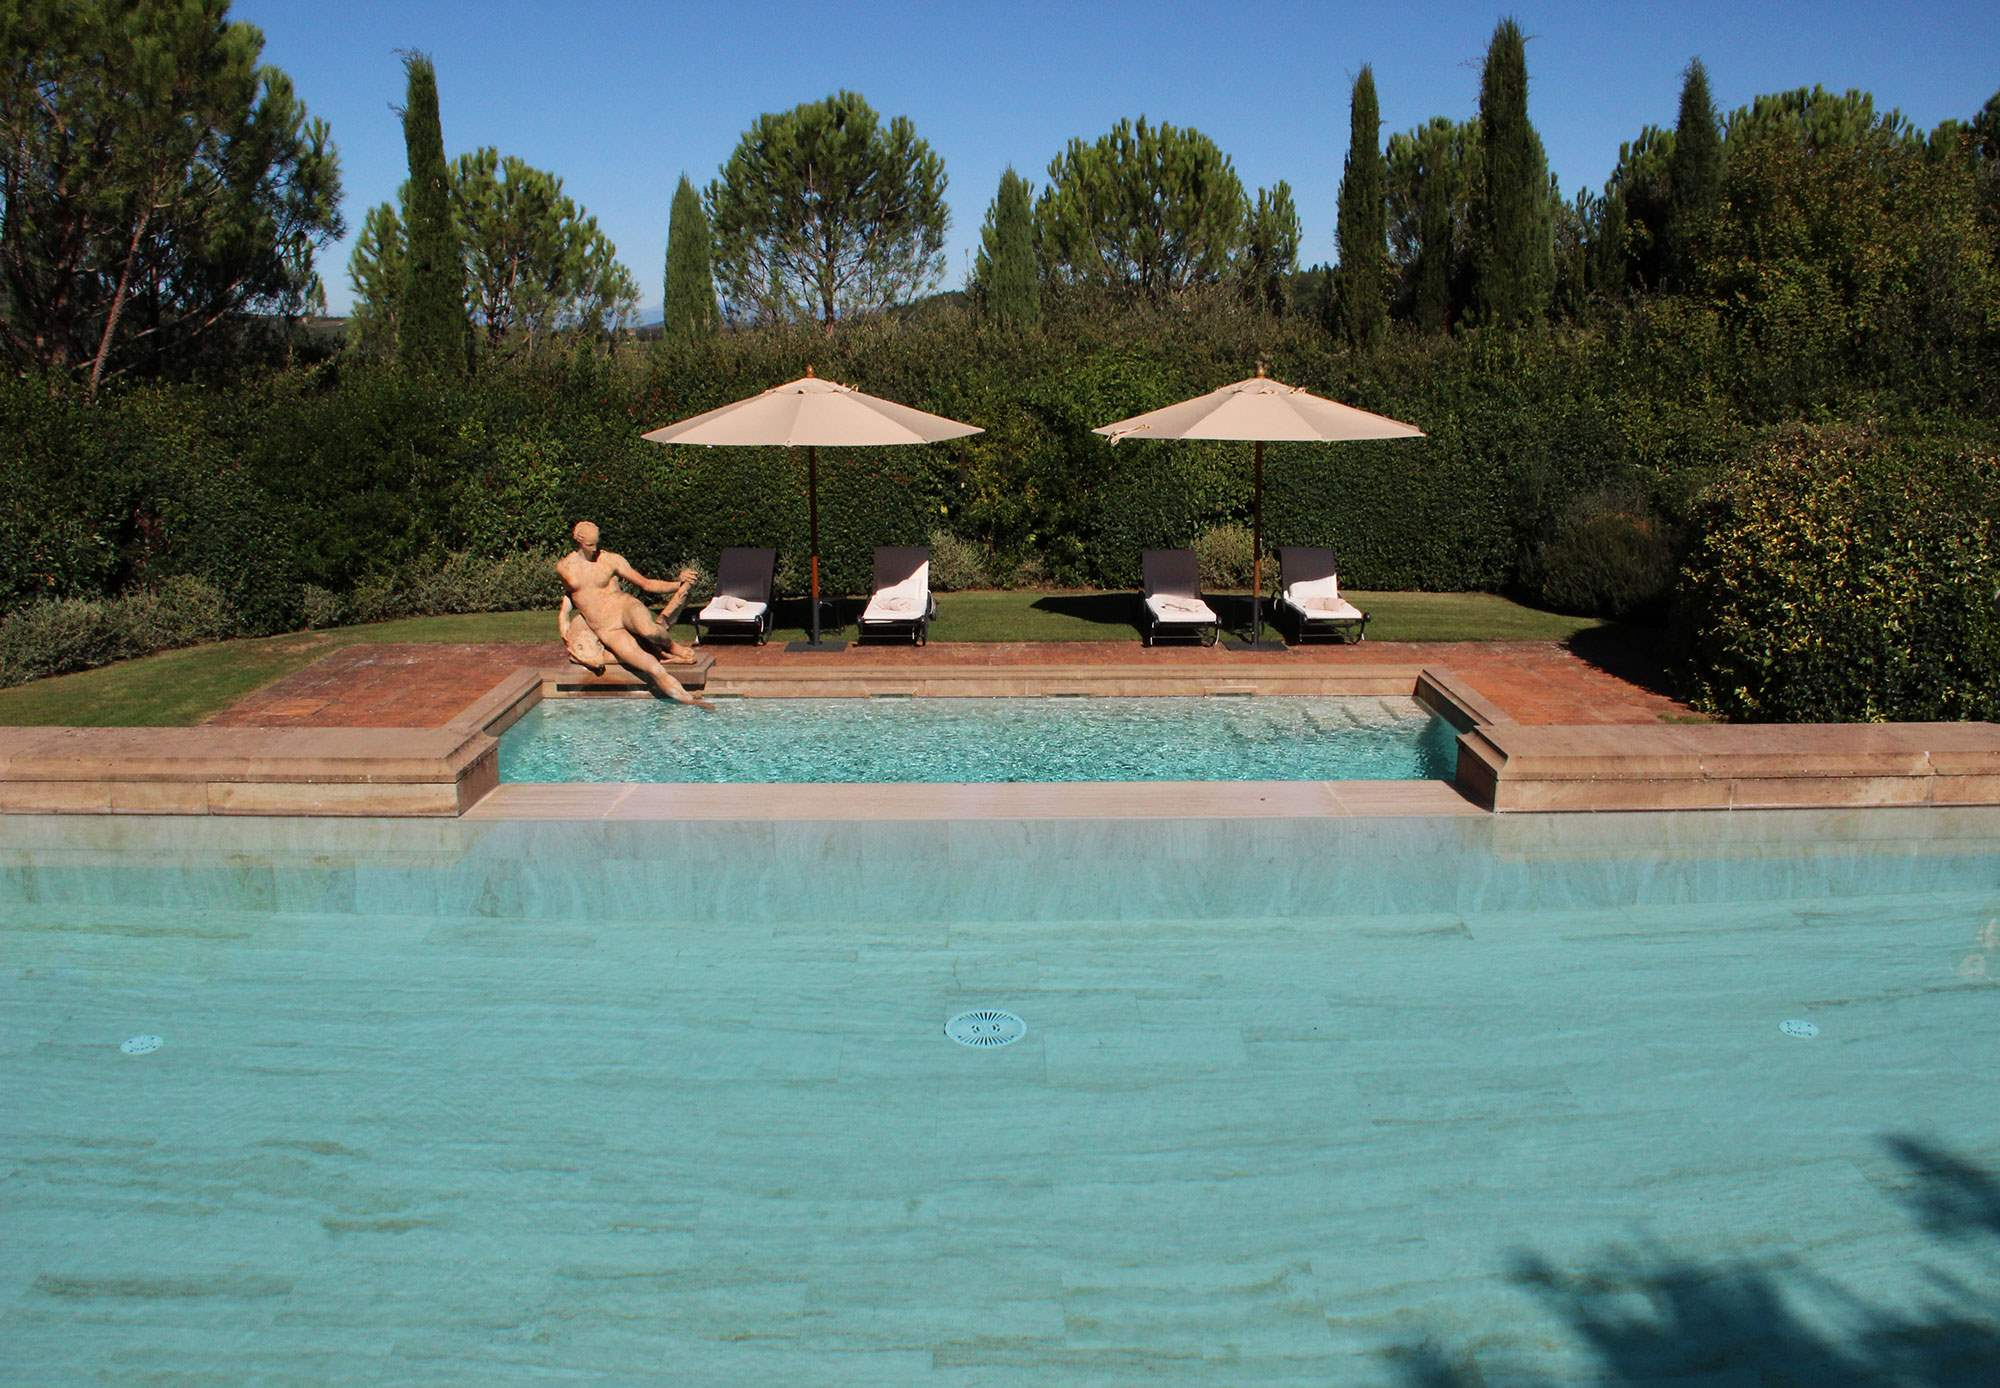 Villa Tuscan, 6 (+2), 3 bedroom villa in Chianti & Countryside, Tuscany Photo #3